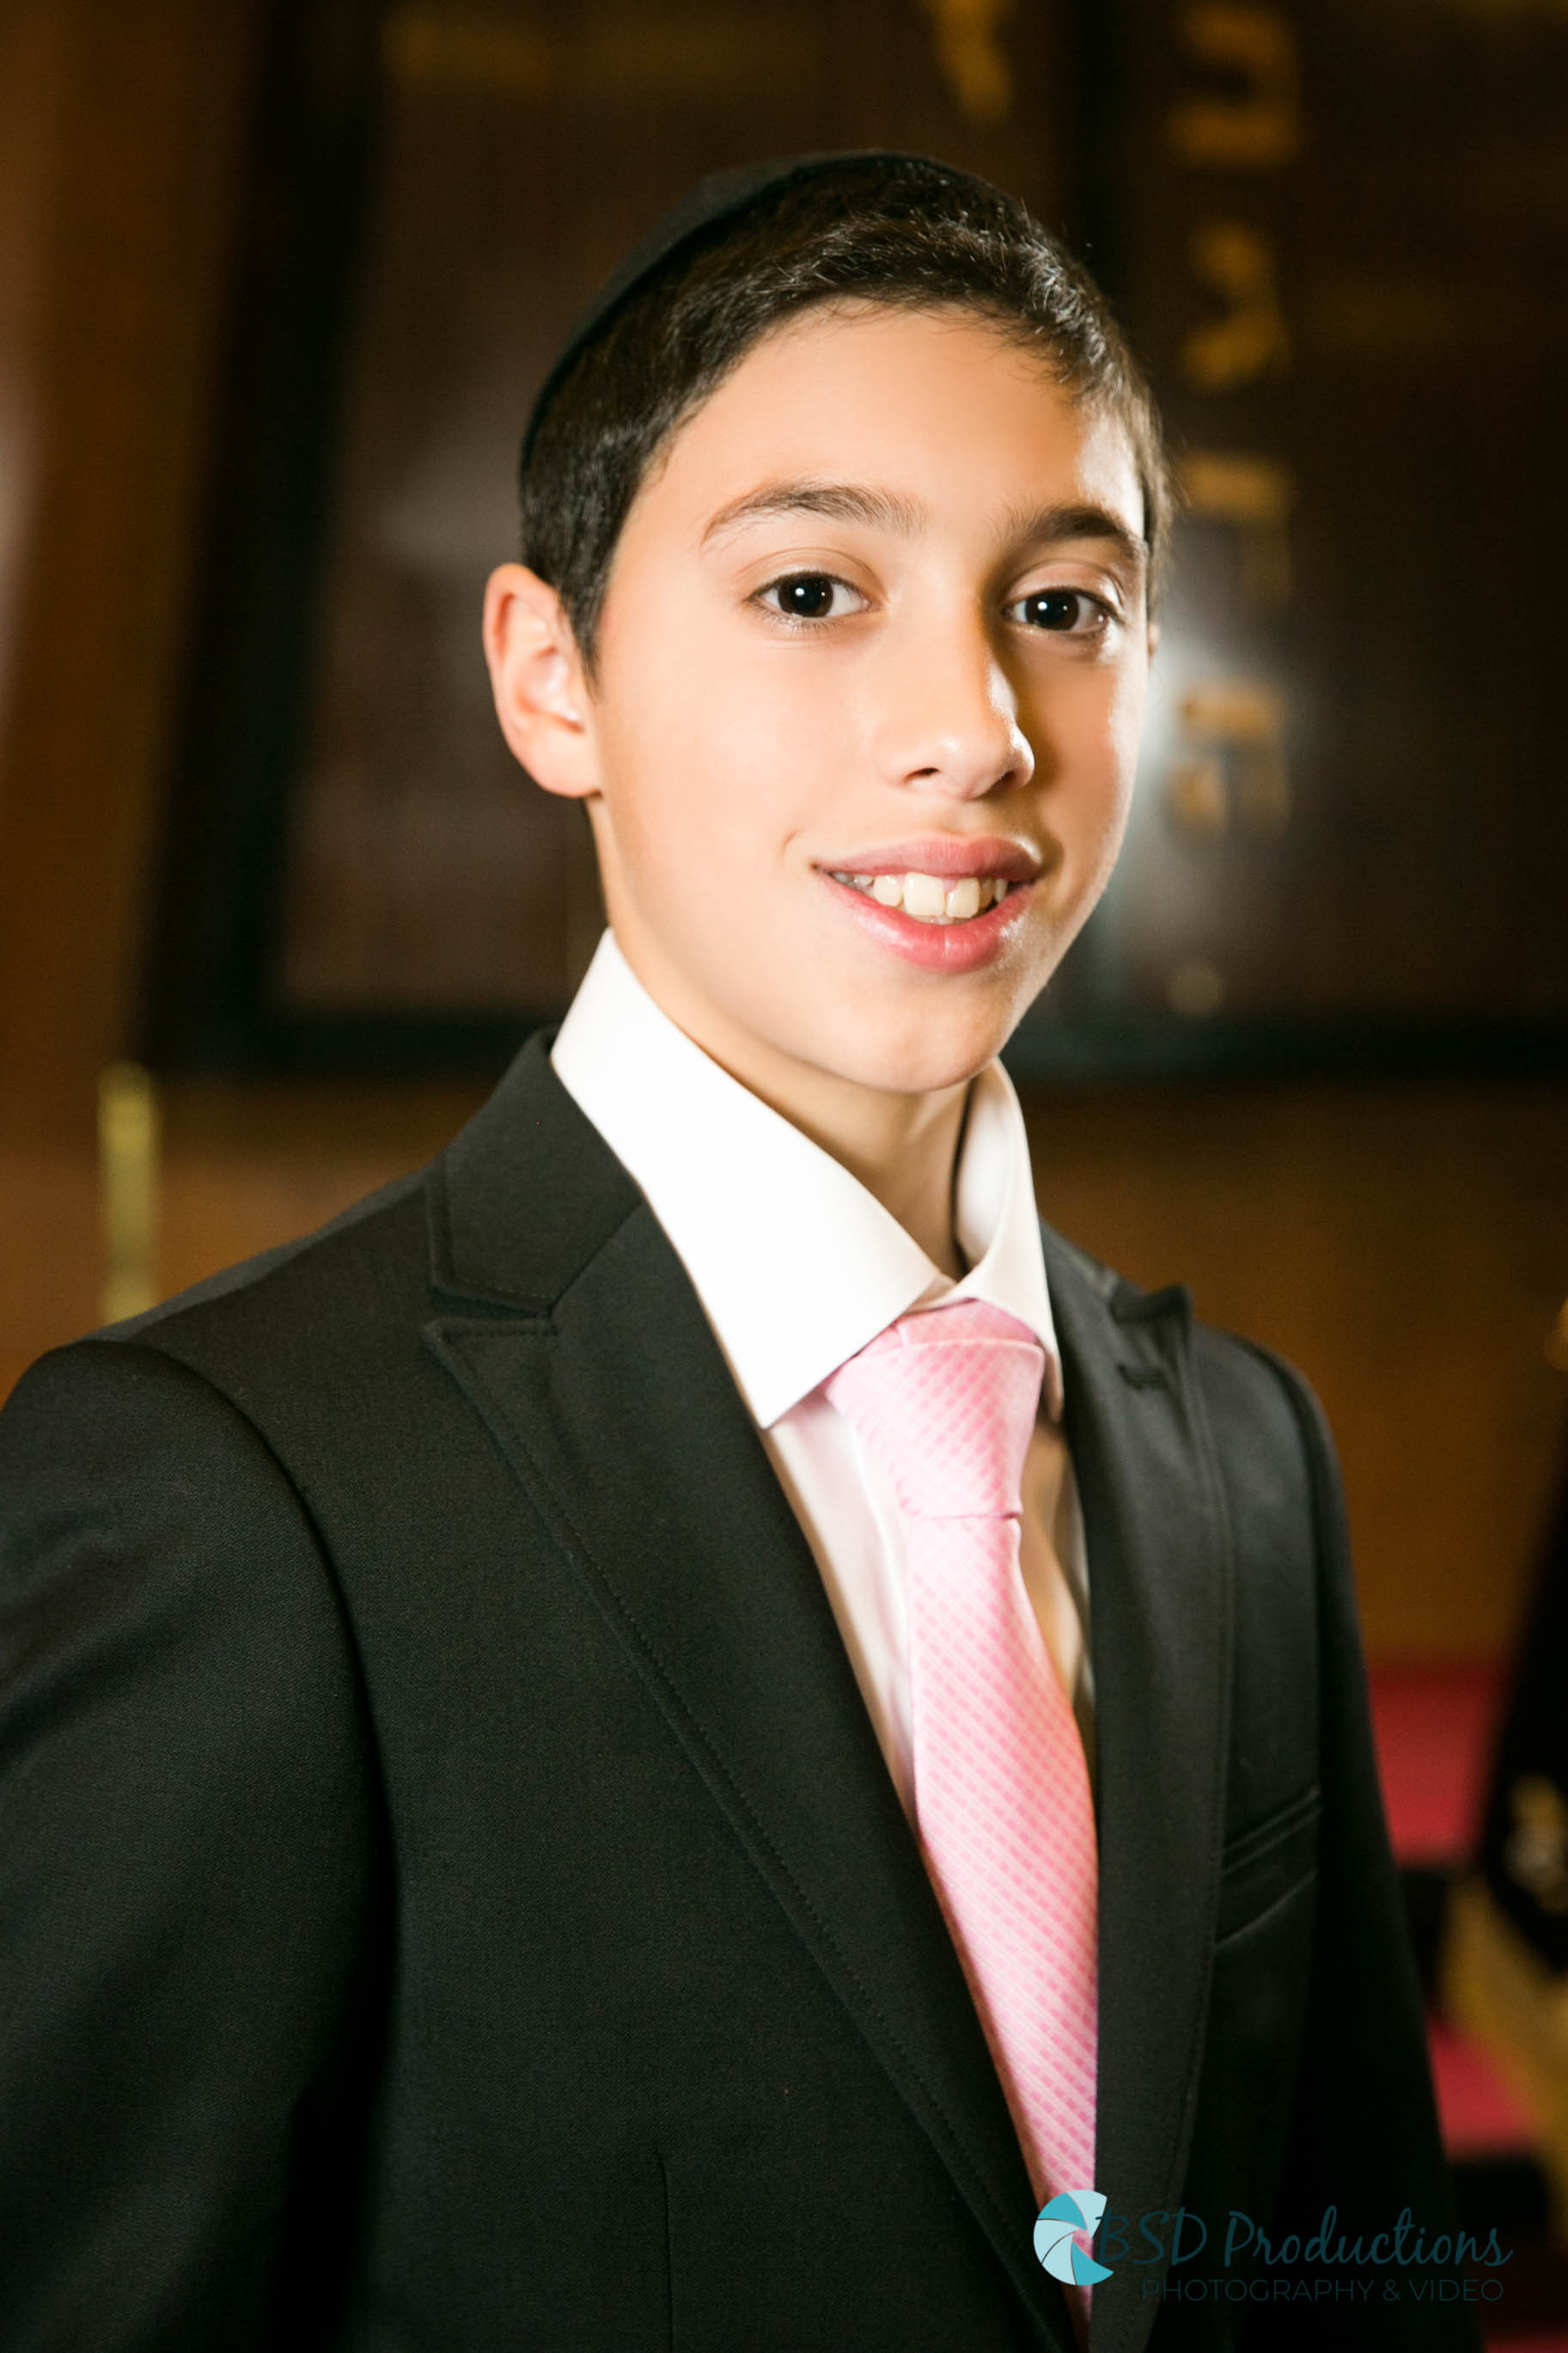 D_R_3486 Bar Mitzvah – BSD Productions Photography